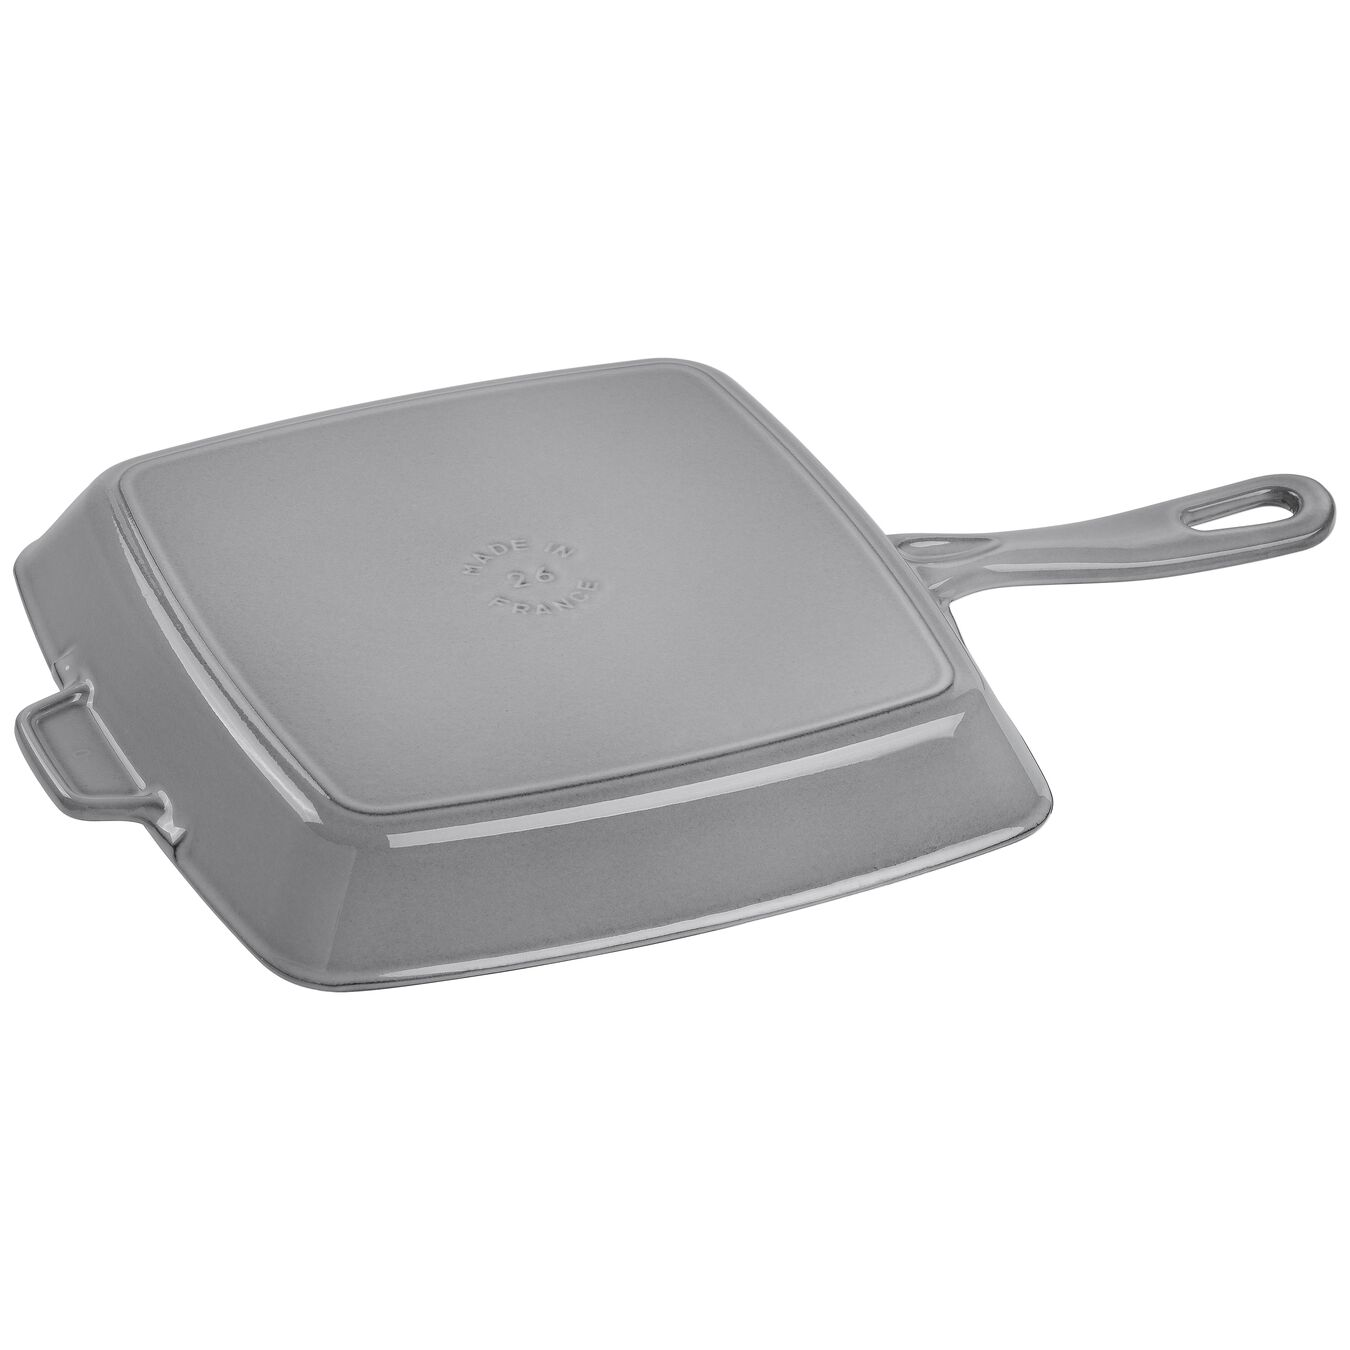 American Grill 26 cm, Gusseisen, Graphit-Grau,,large 2